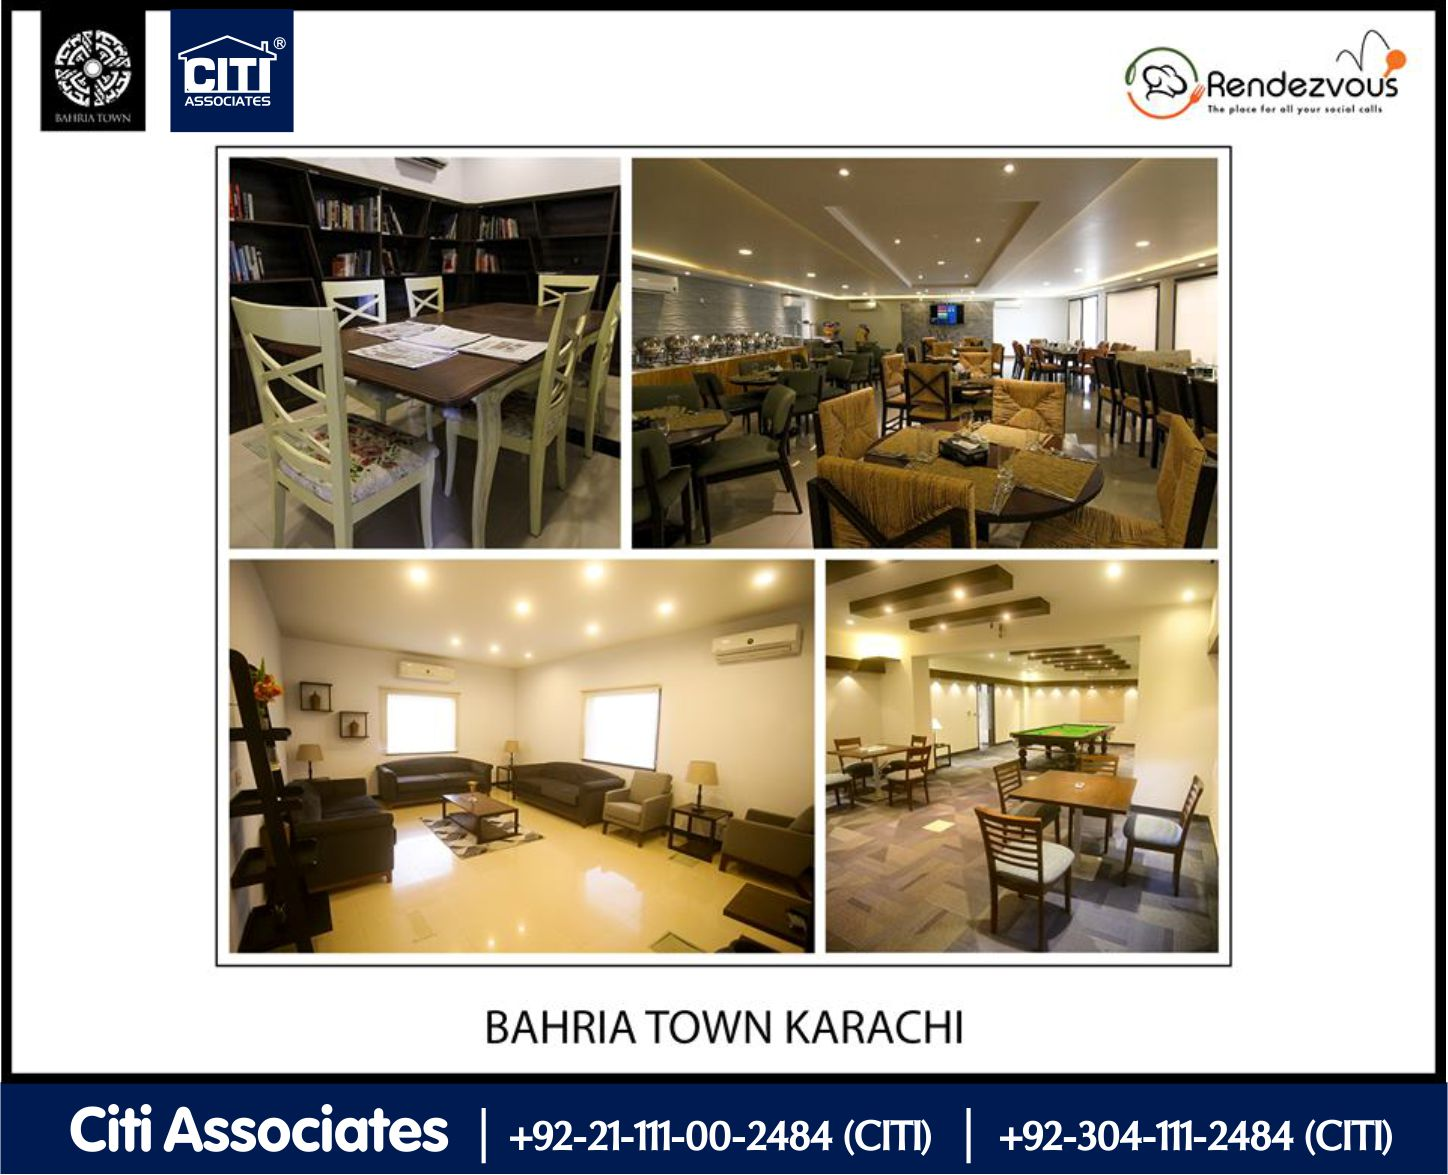 Rendezvous is a Luxurious Membership | Bahria Town Karachi